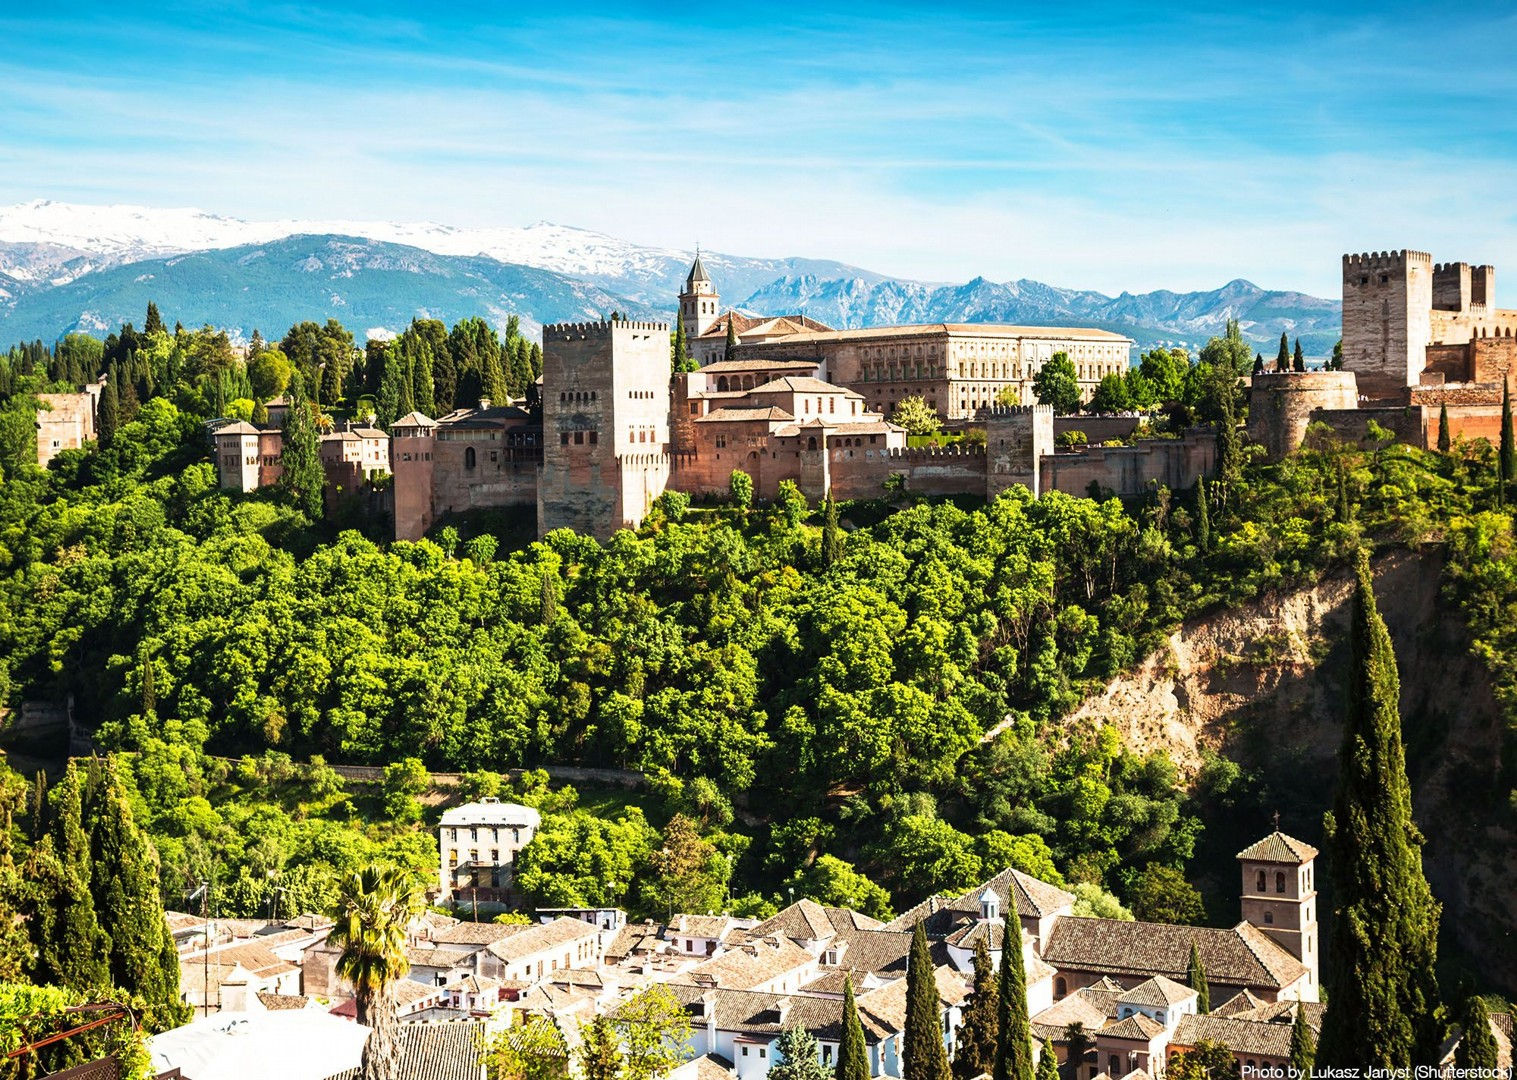 alhmabra-granada-to-seville-guided-leisure-cycling-holiday-in-spain.jpg - Spain - Granada to Seville - Leisure Cycling